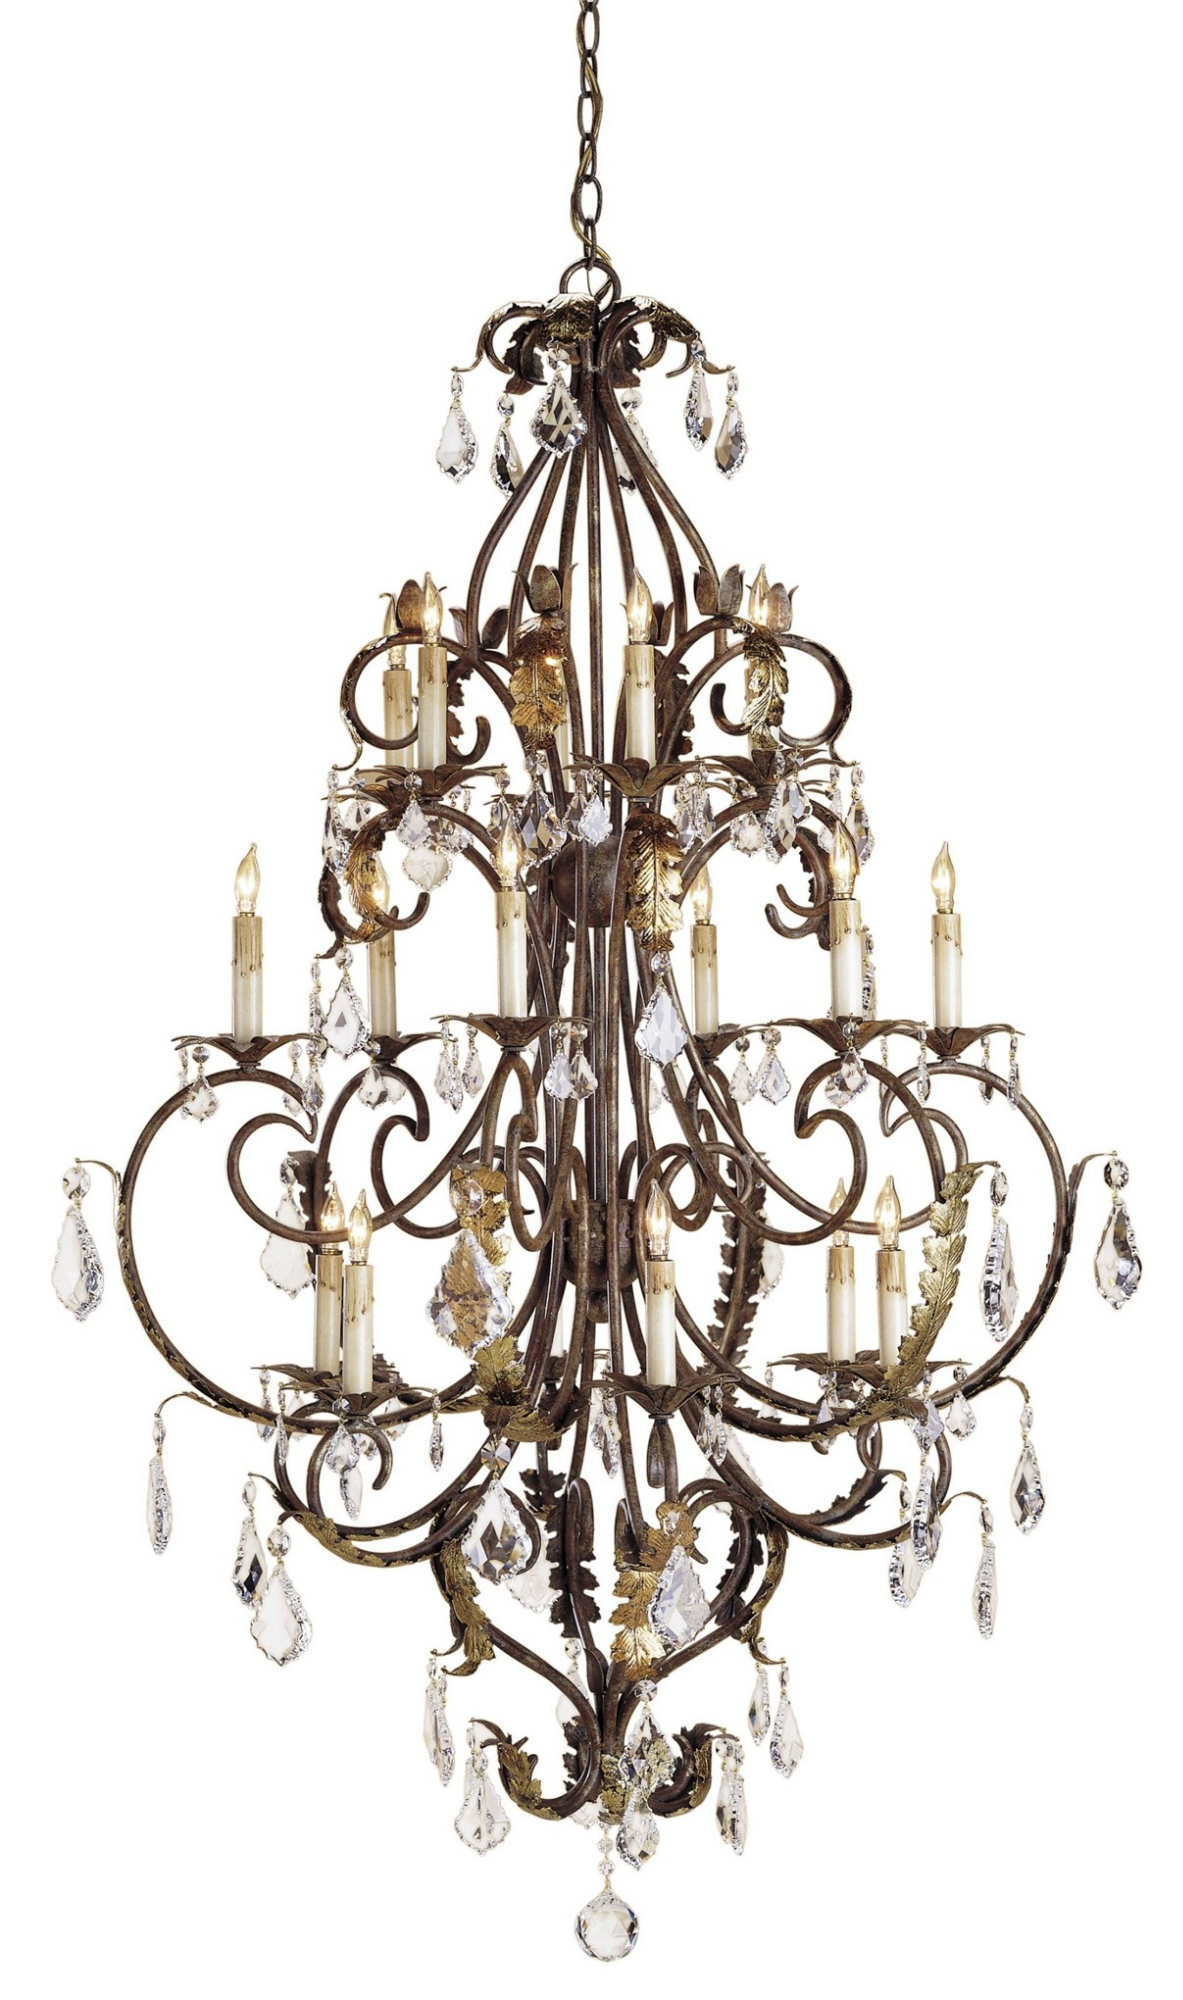 Currey & Company Large Heirloom Chandelier